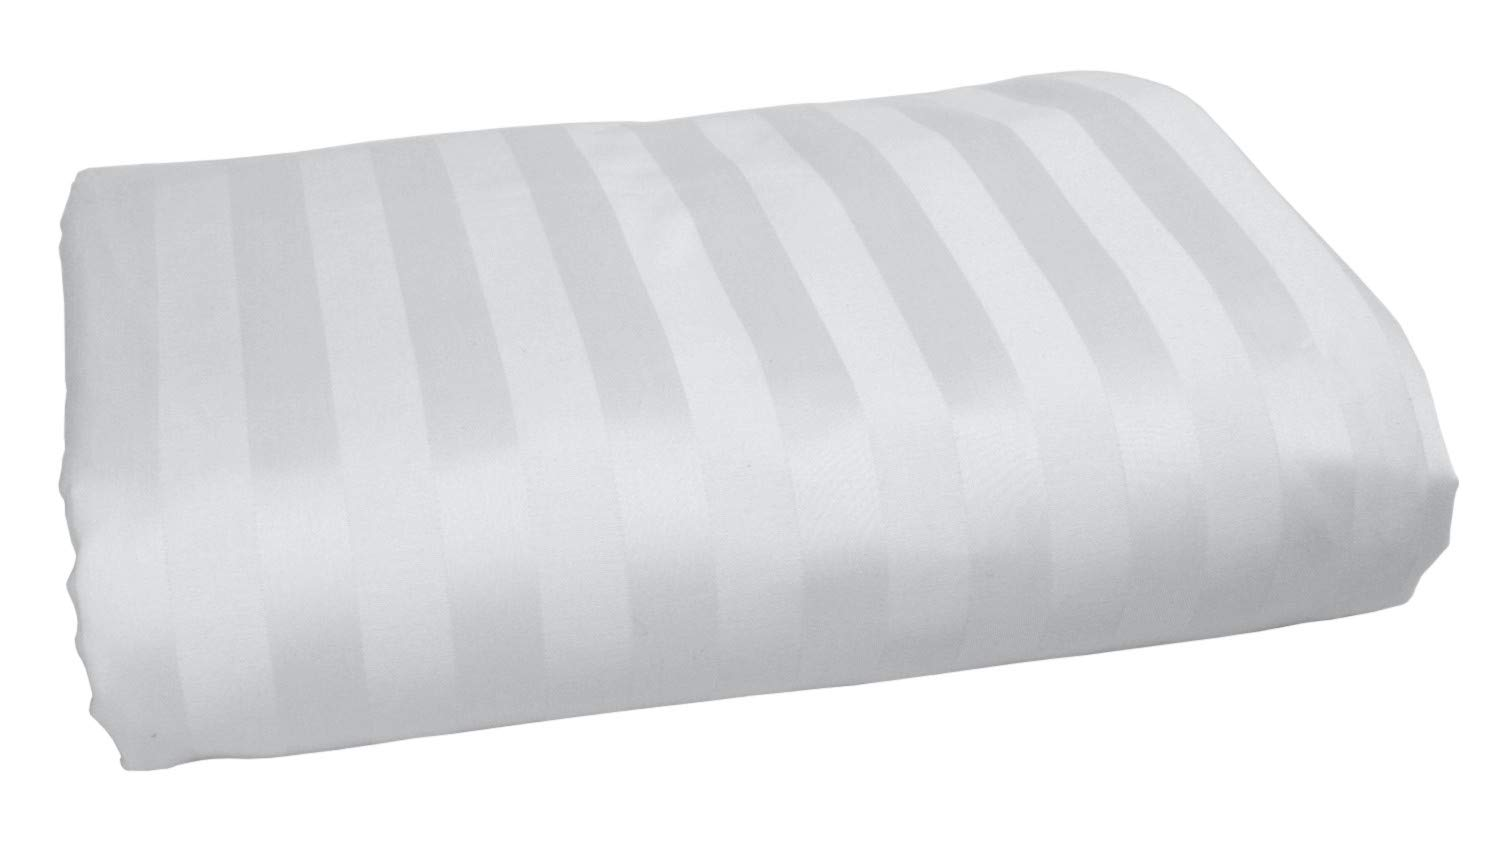 American Pillowcase 100% Long Staple Cotton Luxury Striped 540 Thread Count Flat Sheet - Queen, White